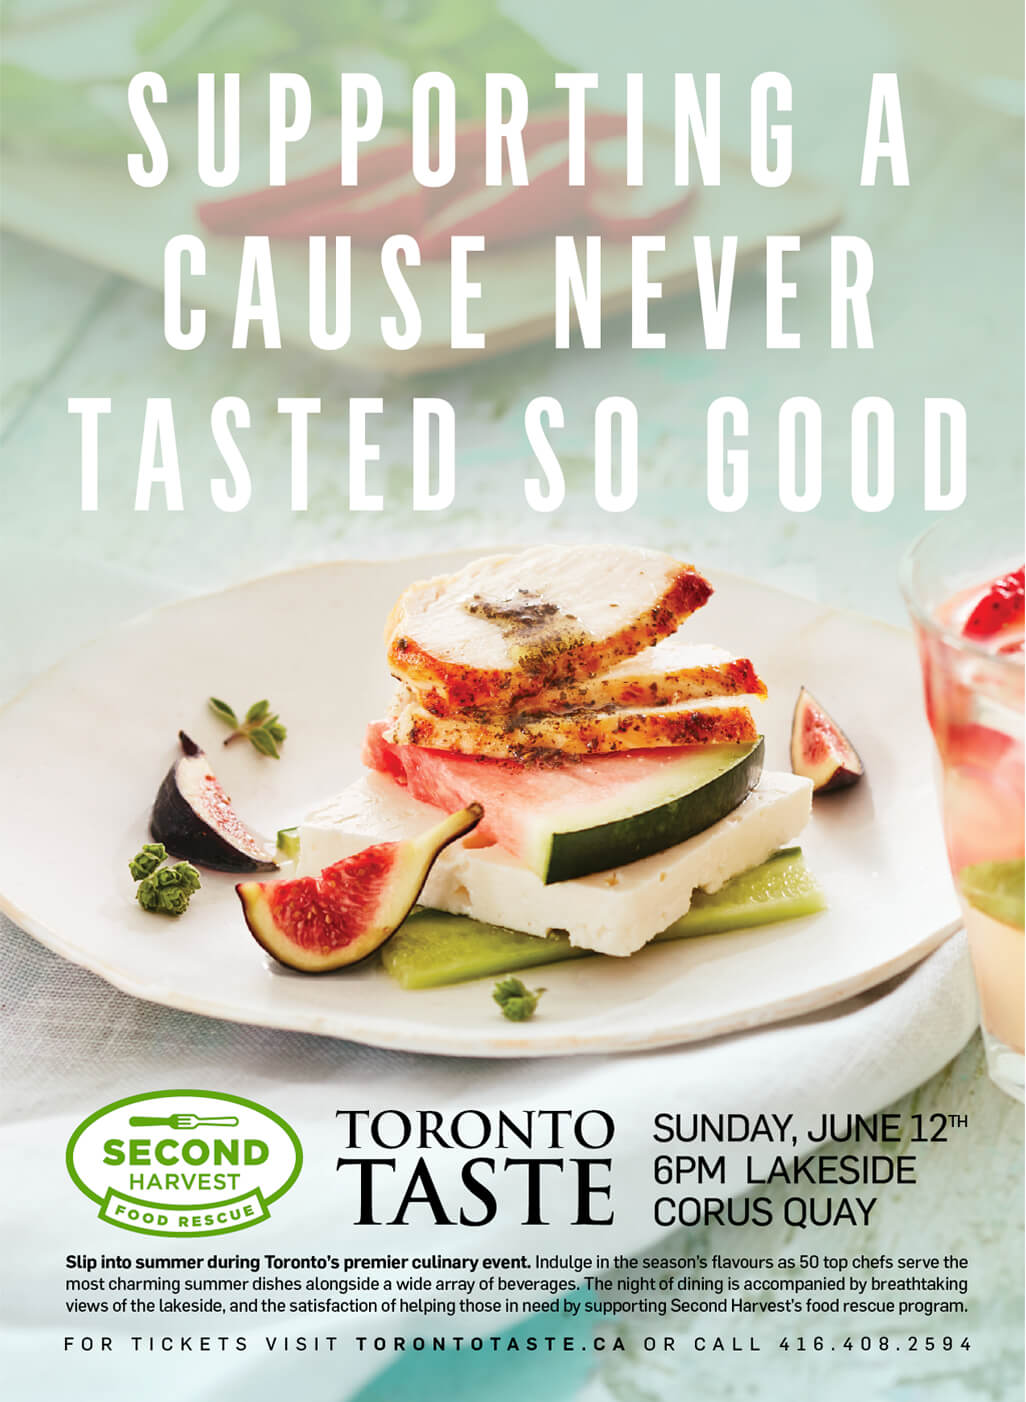 "Poster of Second Harvest's Toronto Taste Festival showing a meal on a white plate and a glass of cocktail beside it, with the slogan ""Supporting a cause never tasted so good""."